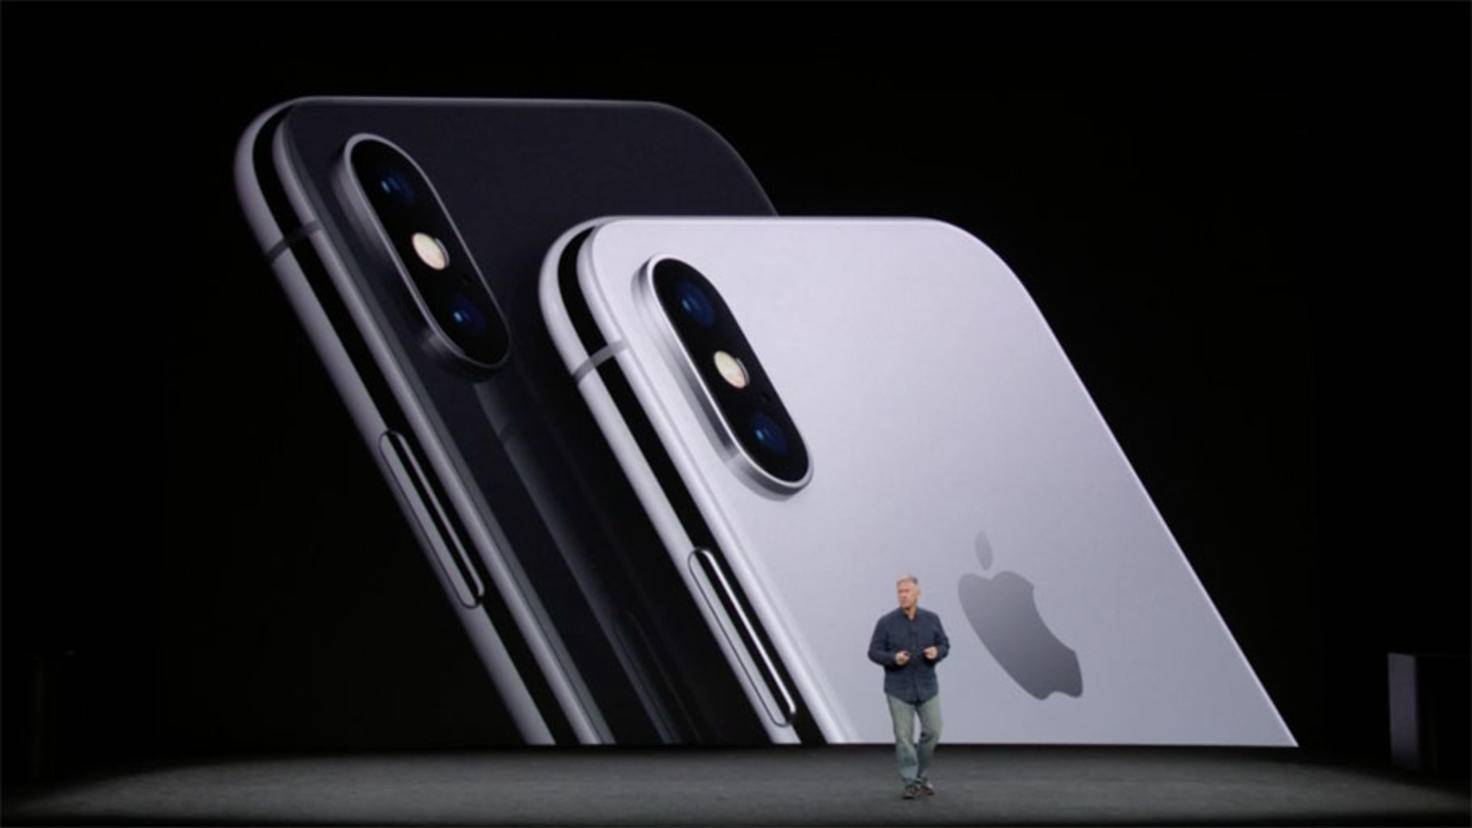 iphone-x-2-keynote-2017